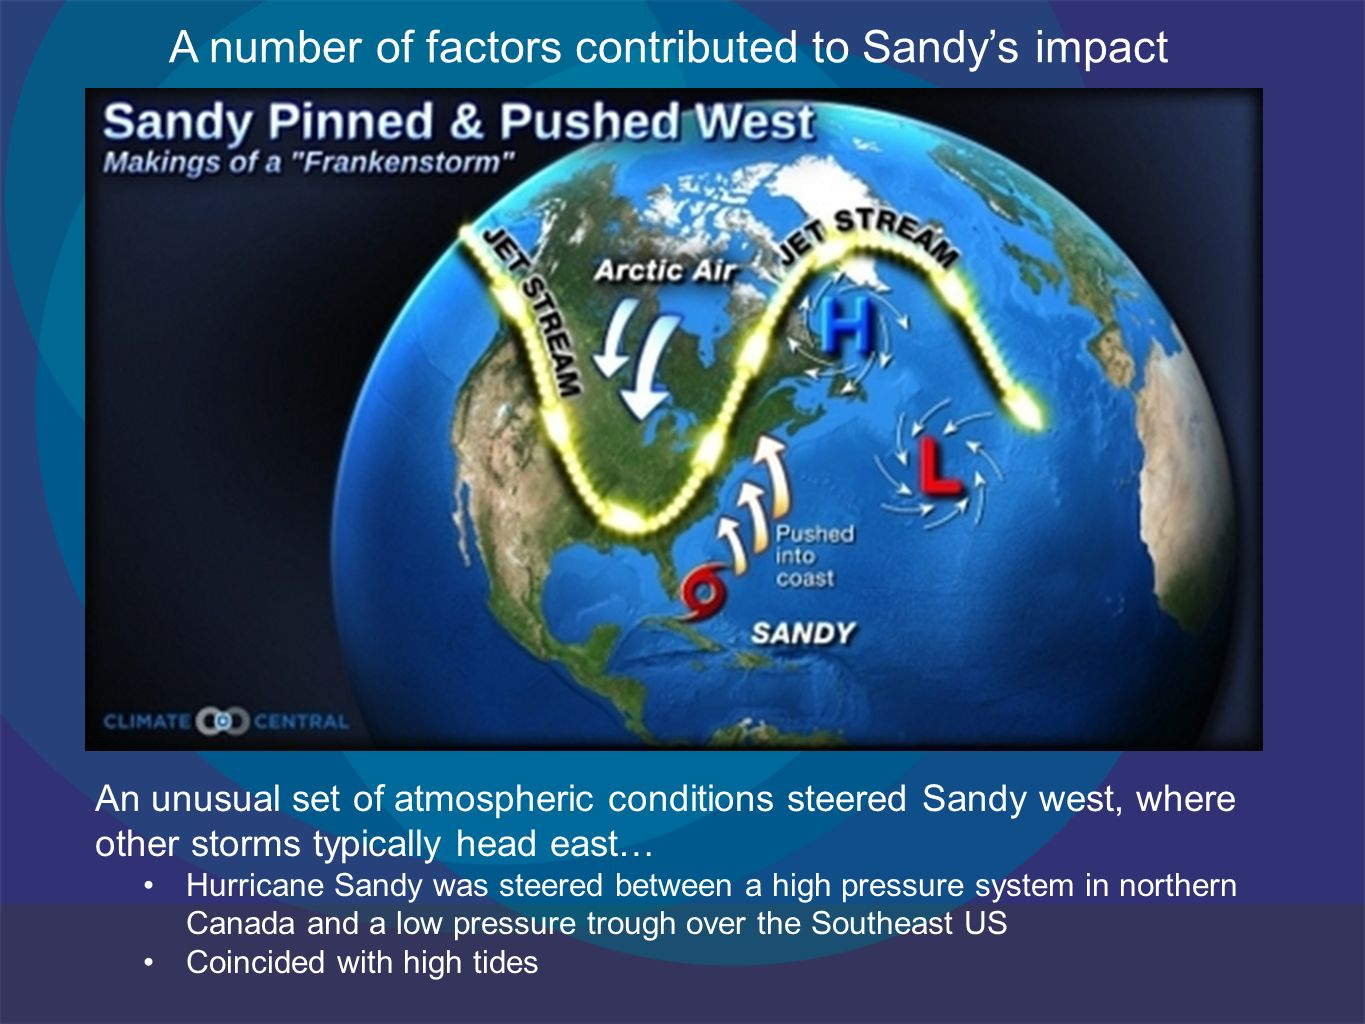 A number of factors contributed to Sandy's impact